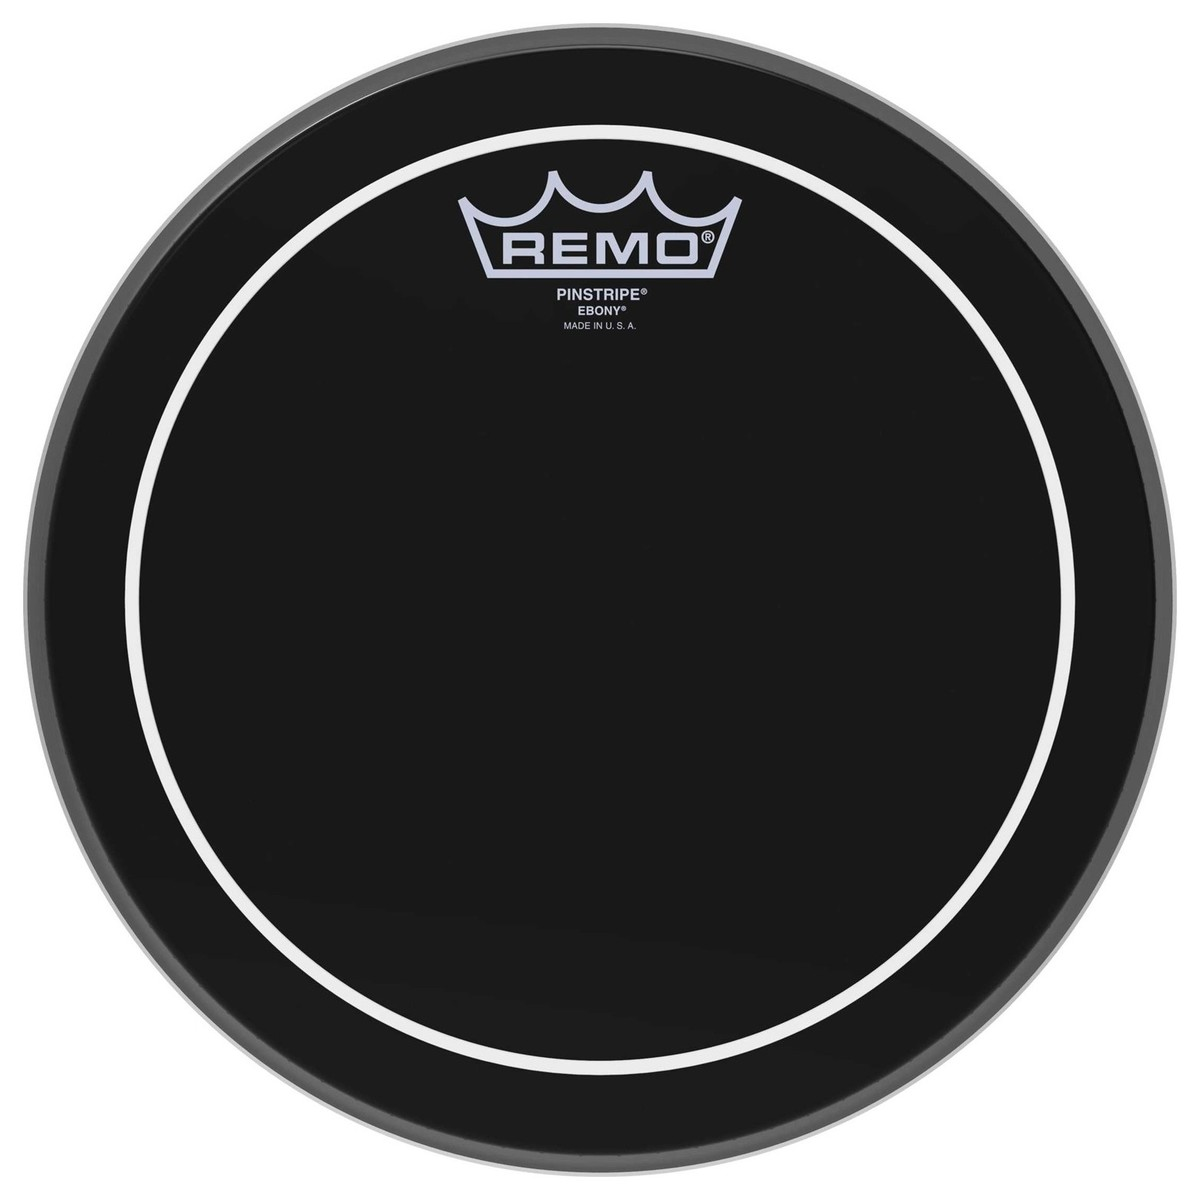 Remo Pinstripe Ebony 18 Drum Head